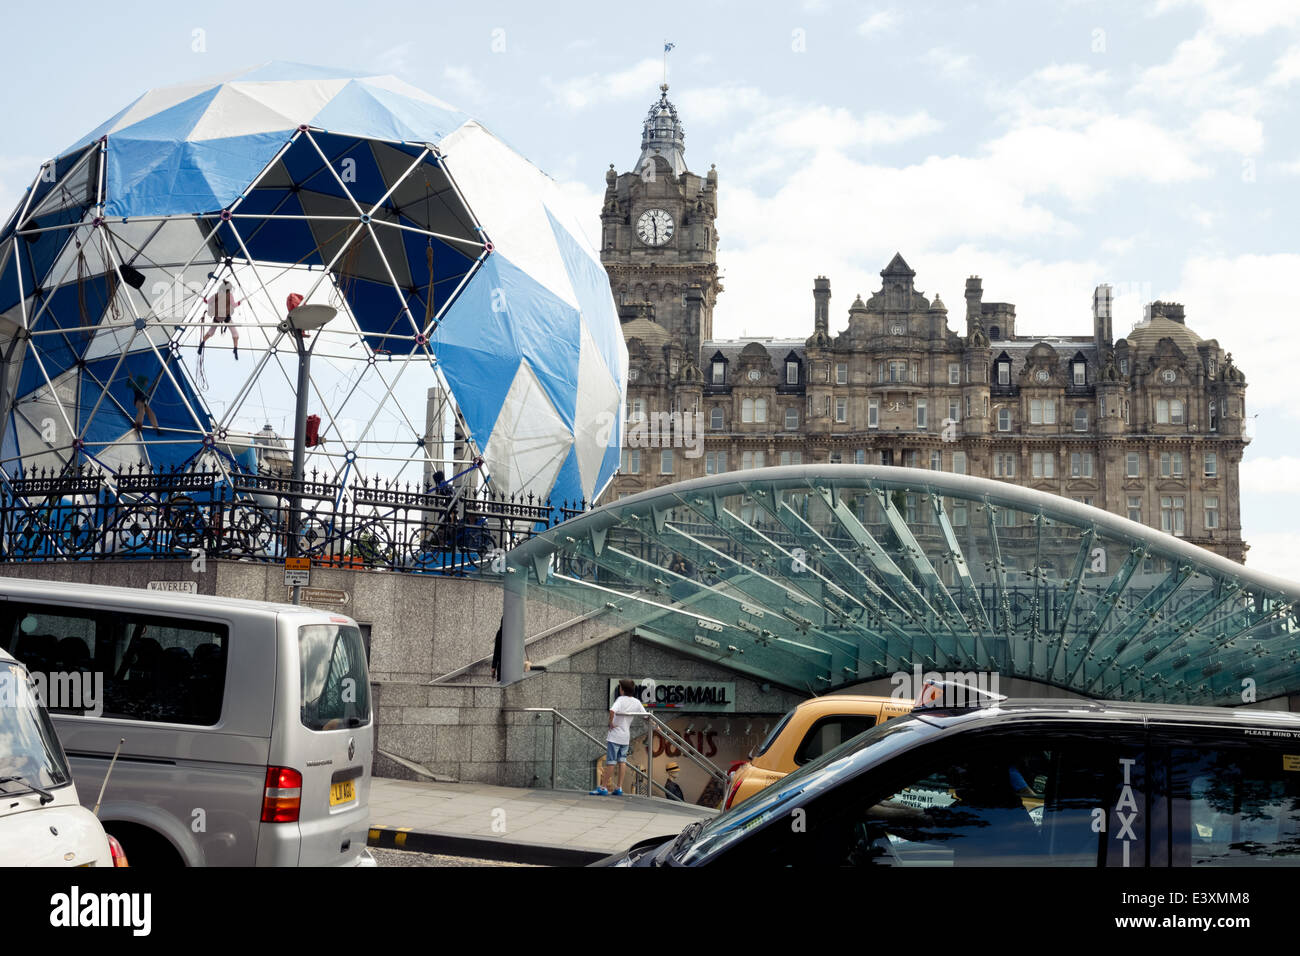 Edinburgh street scene at Princes Mall with the Balmoral Hotel in the background - Stock Image